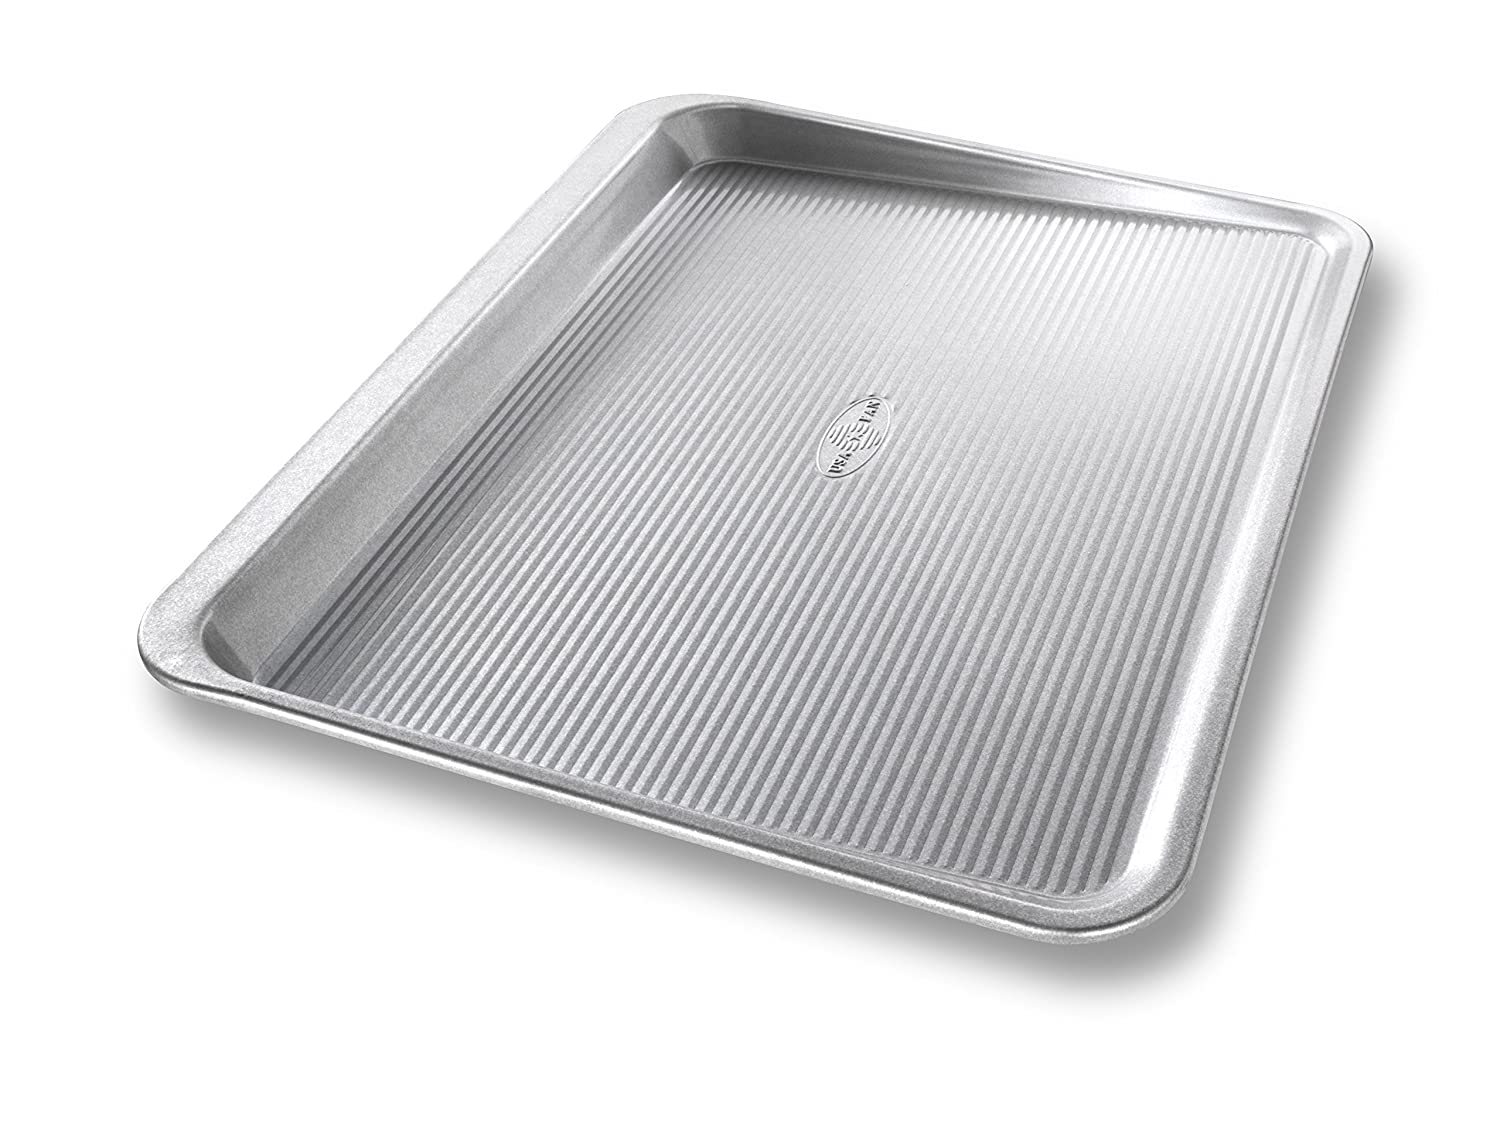 USA Pan Bakeware Aluminized Steel Cookie Scoop Pan, Large